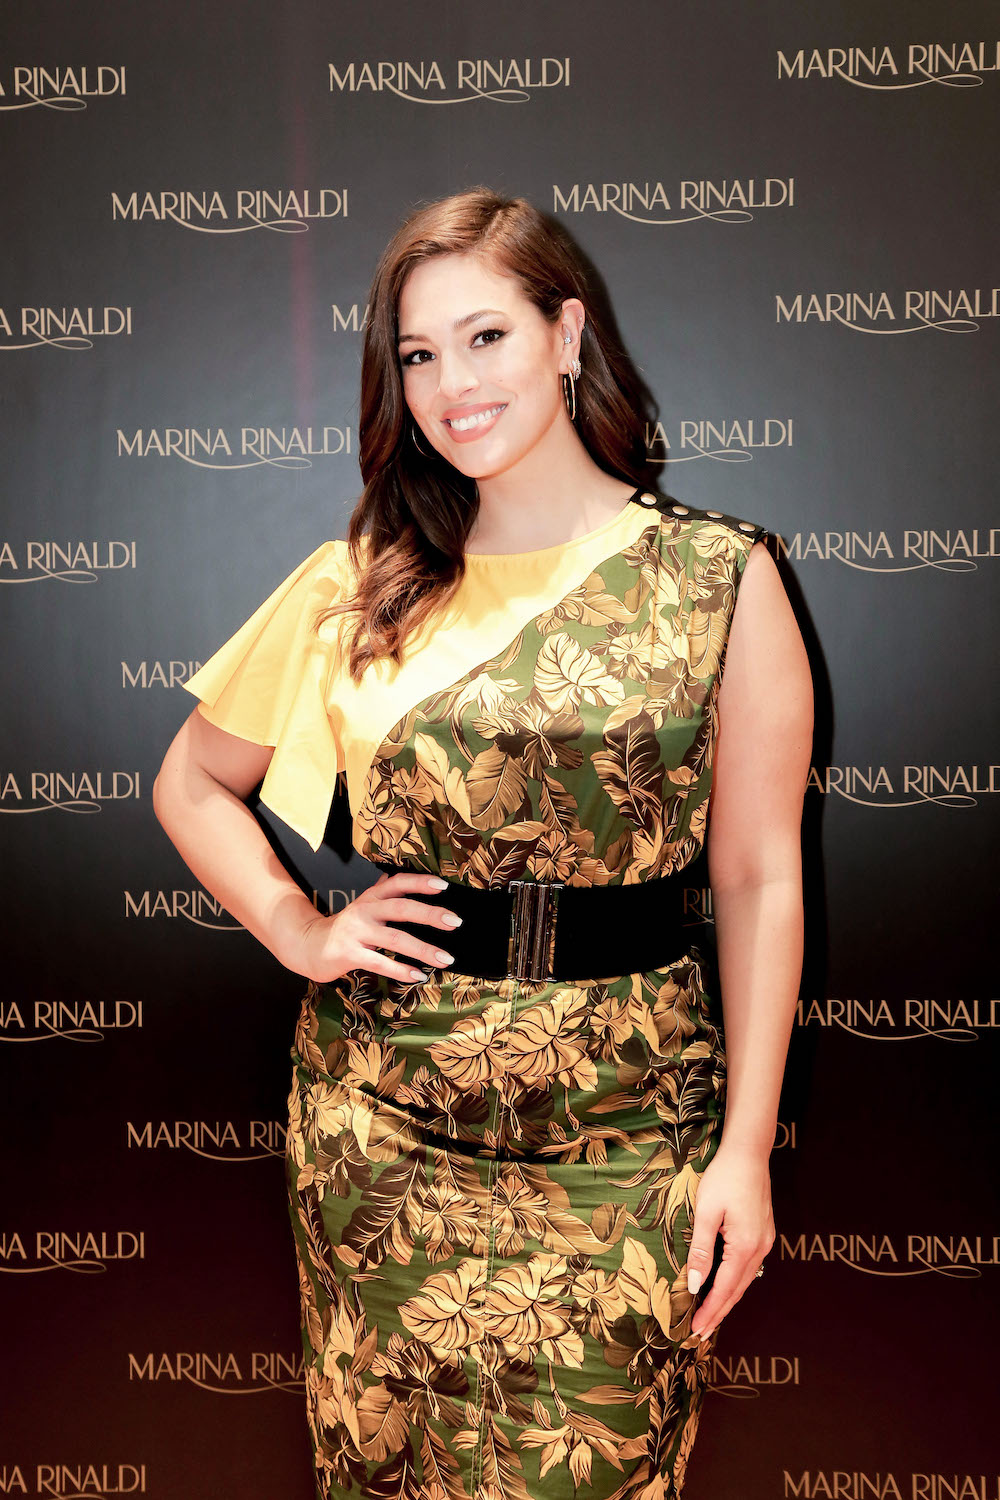 Ashley Graham at the opening of the new Marina Rinaldi flagship at Dubai Mall